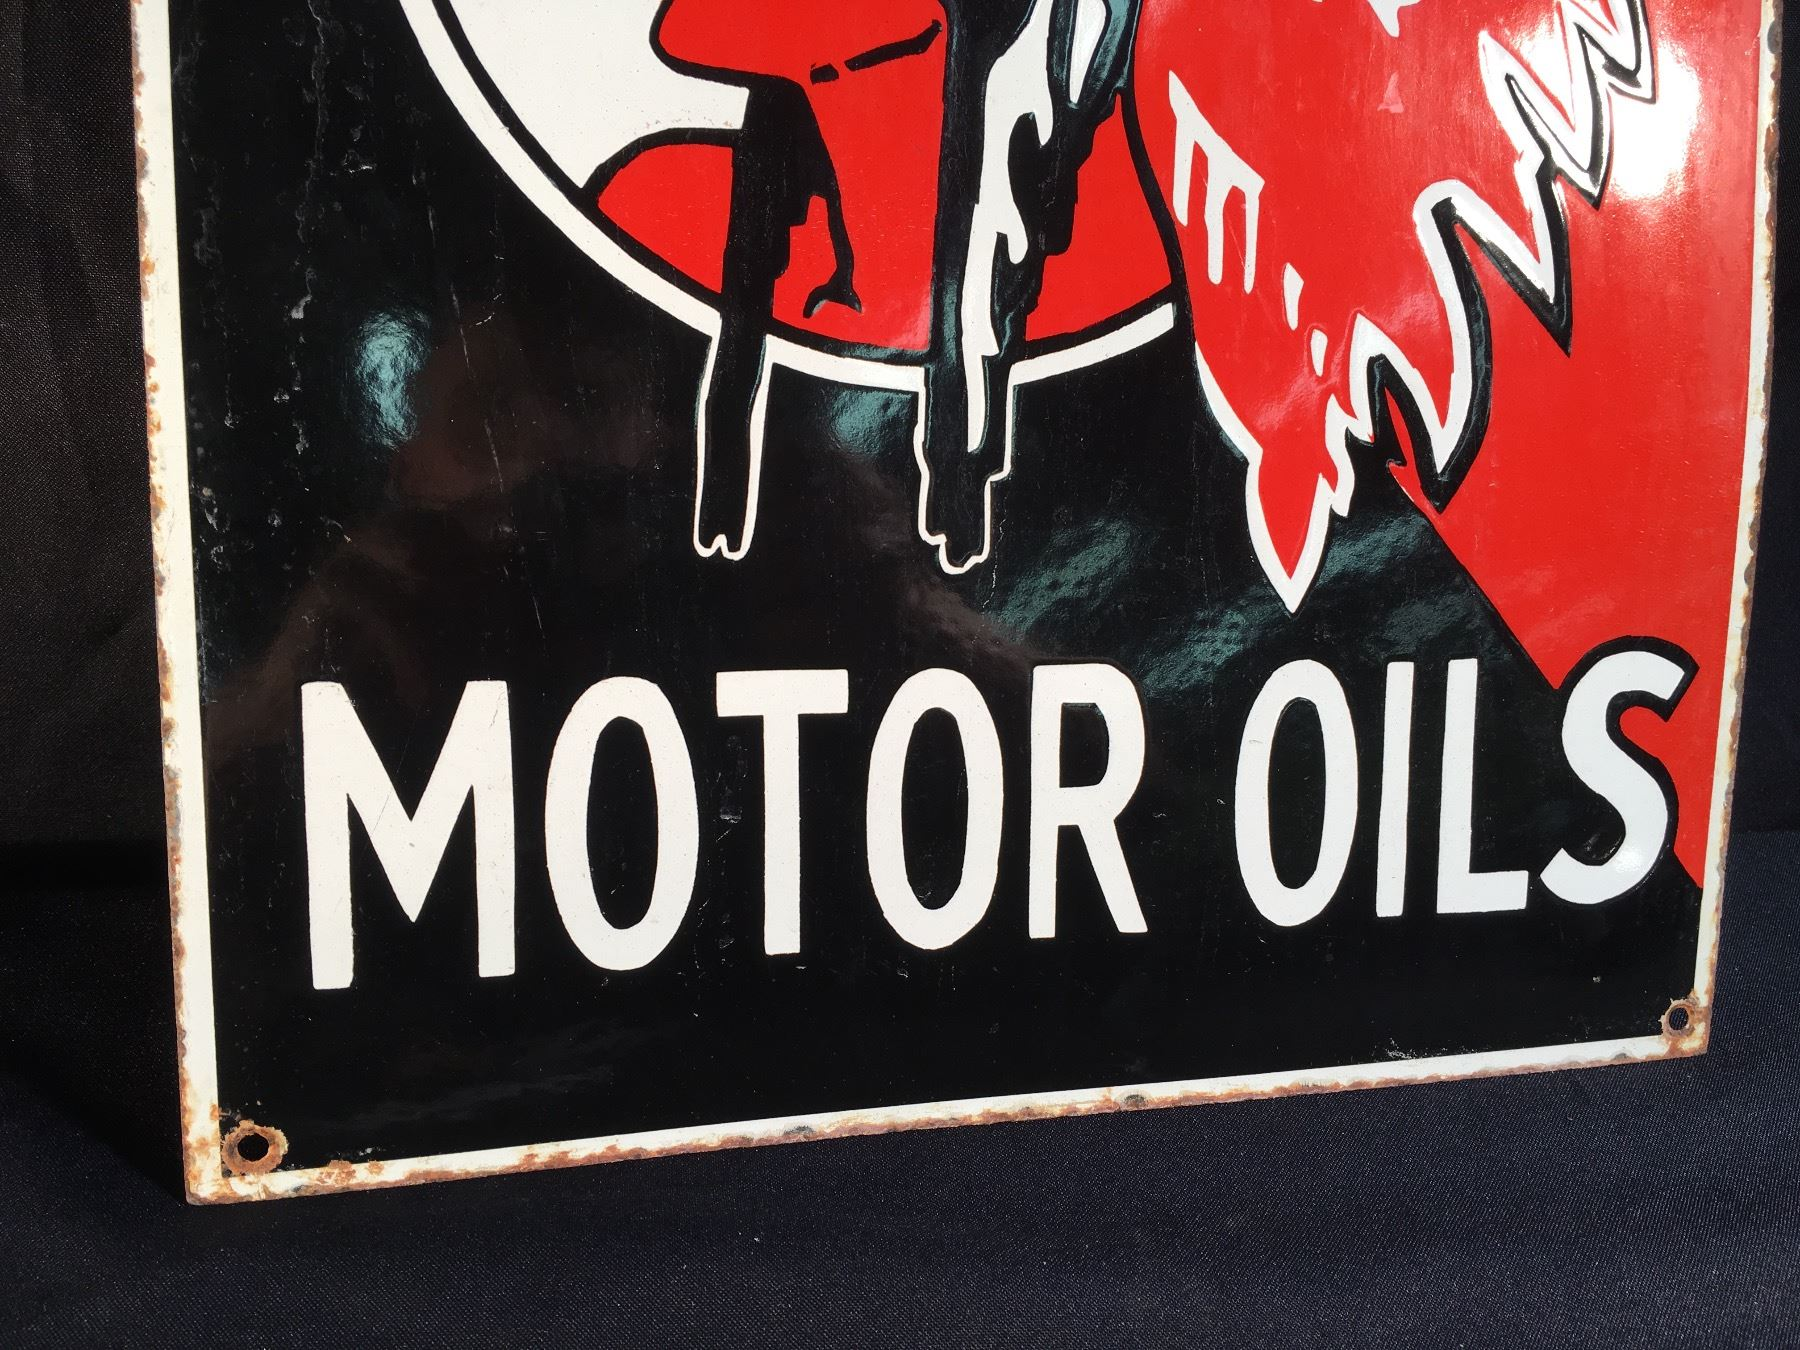 RED INDIAN MOTOR OILS AUTHENTIC VINTAGE PORCELAIN AND METAL SIGN,